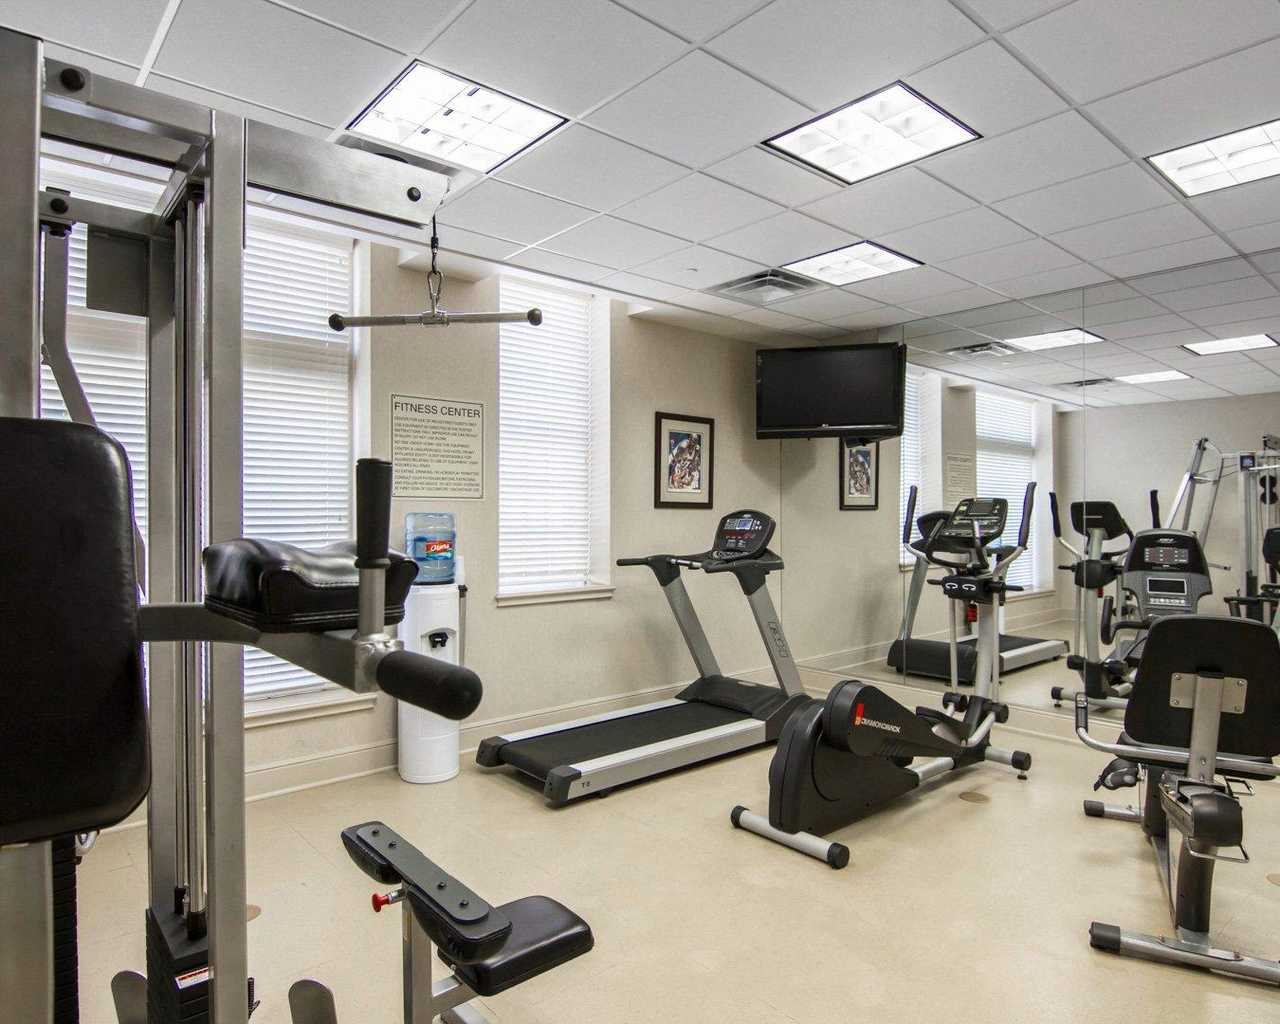 https://www.hotelsbyday.com/_data/default-hotel_image/1/9602/fitnessroom1.jpg